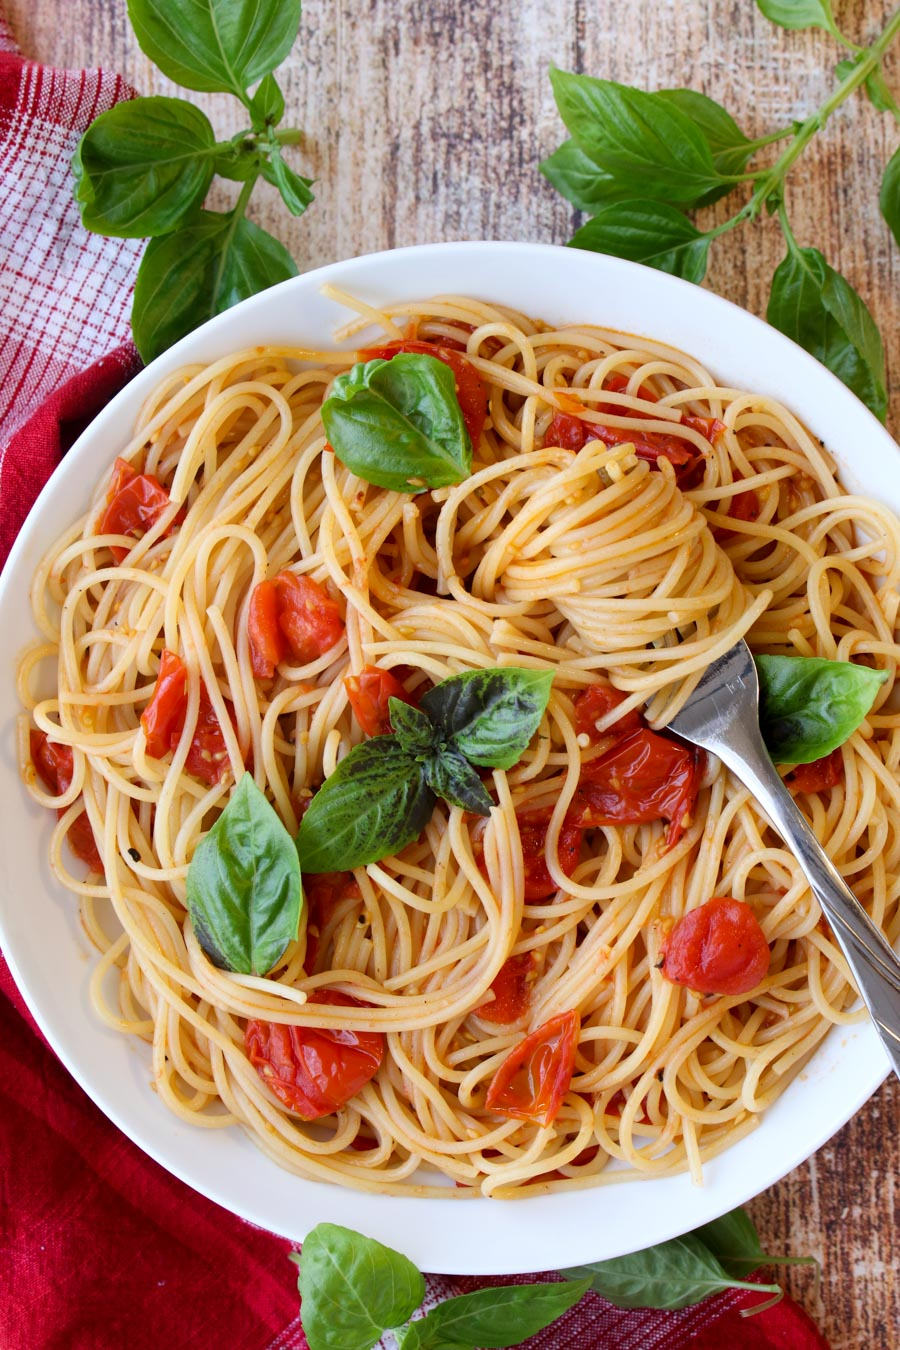 Bowl of pasta with tomatoes and pasta swirled around a fork